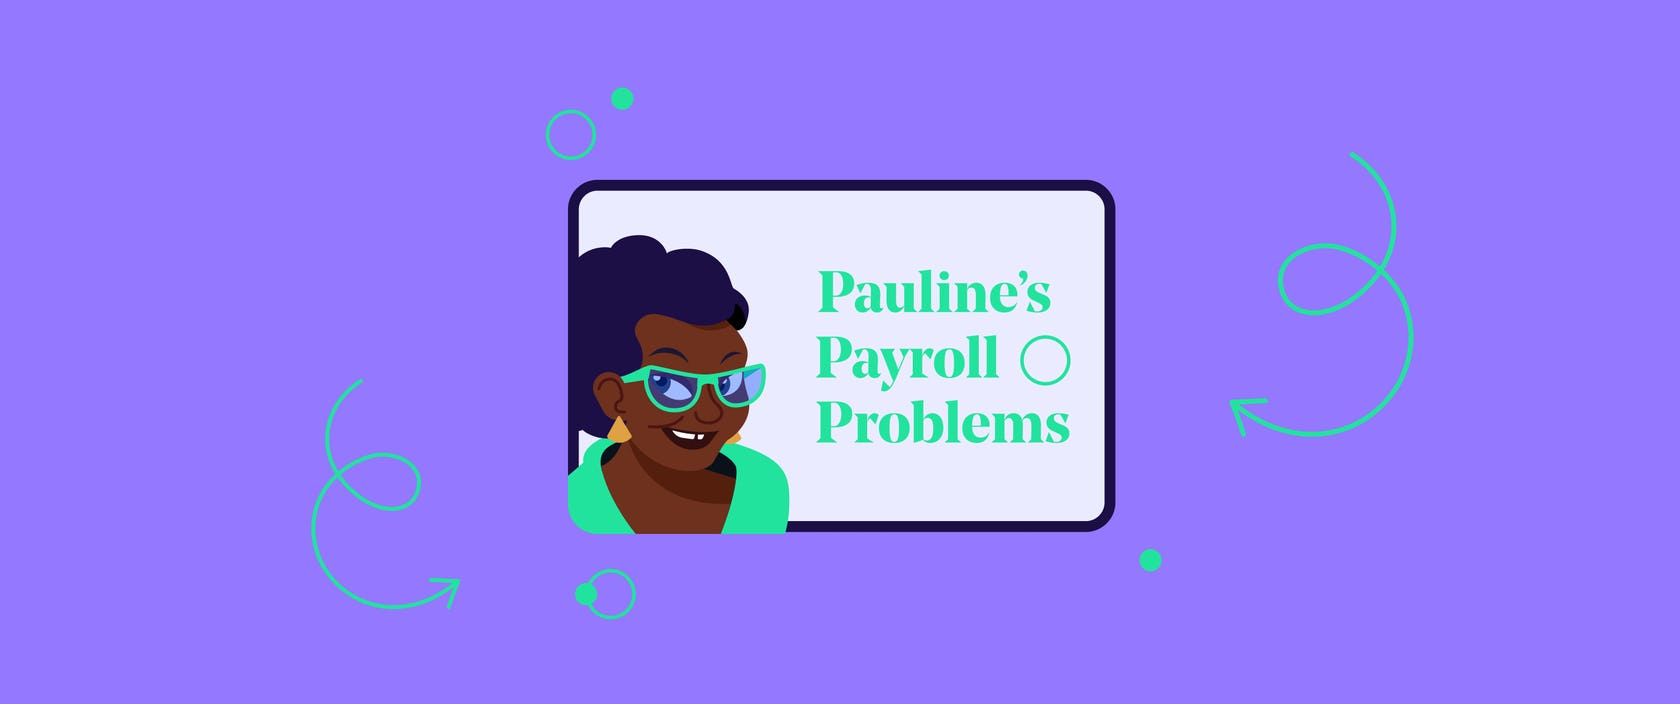 Pauline's Payroll Problems – End of Tax Year.